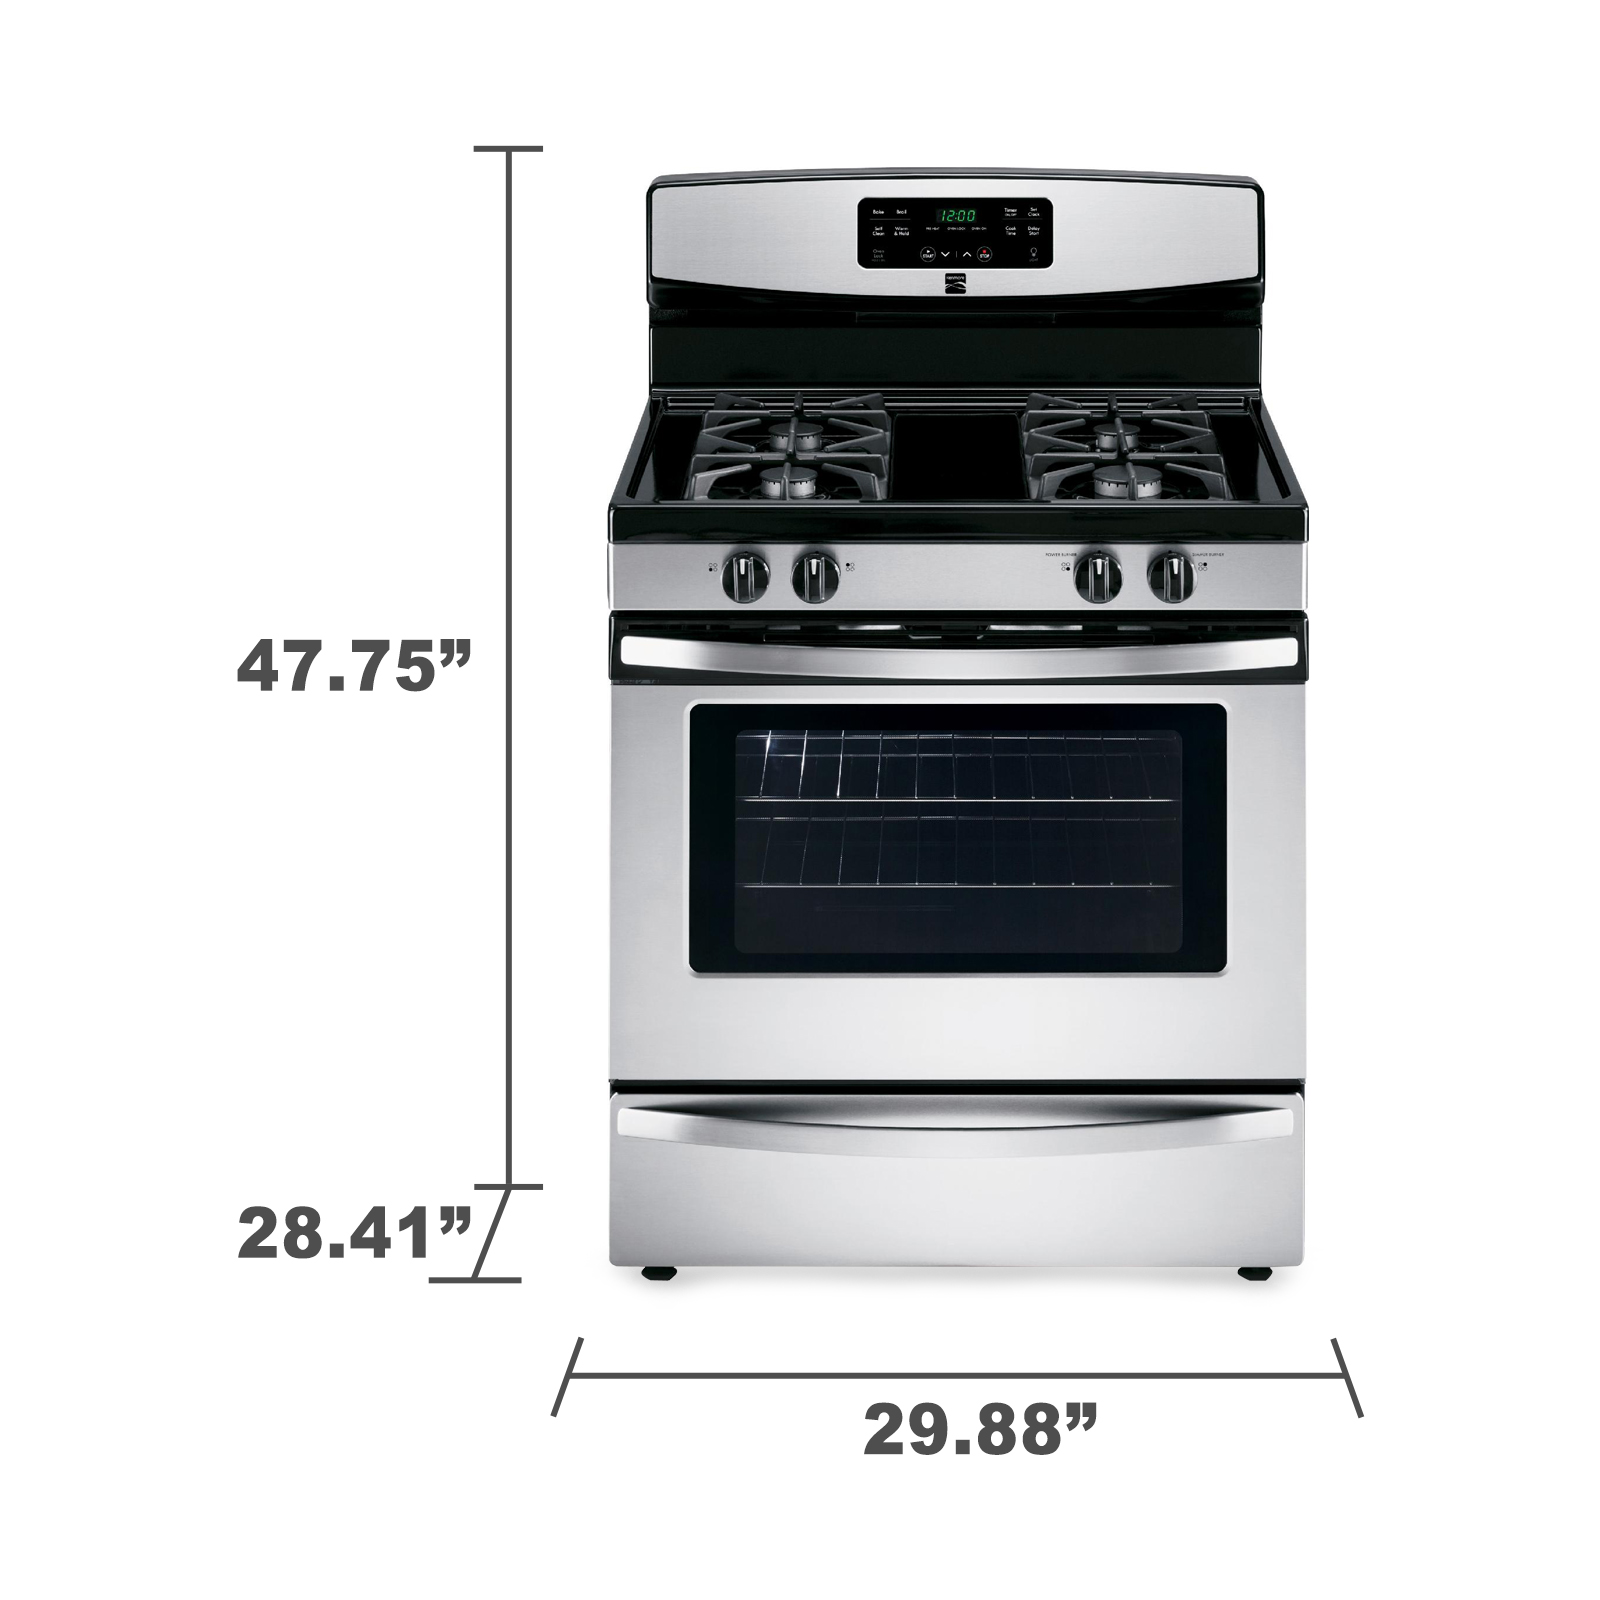 Kenmore 5.0 cu. ft. Gas Range - Stainless Steel